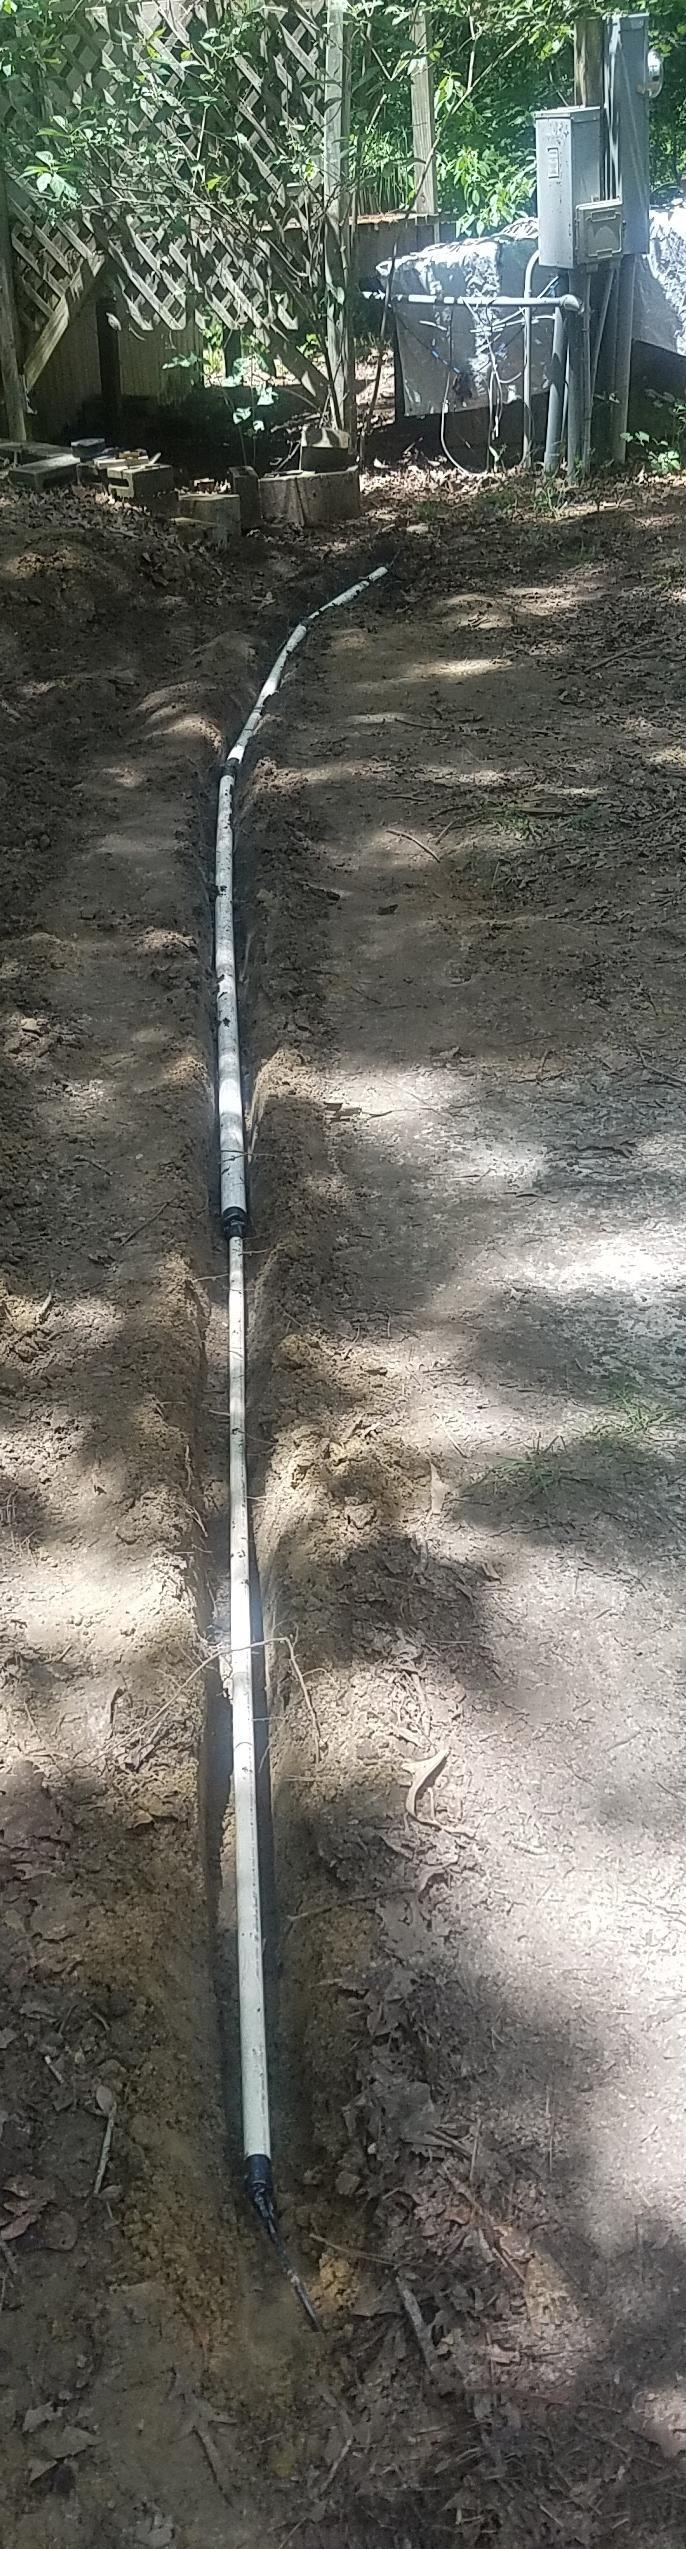 686x2549 Conduit in ditch, Cable, in Telephone conduit ditch, by John S. Quarterman, for OkraParadiseFarms.com, 24 May 2018